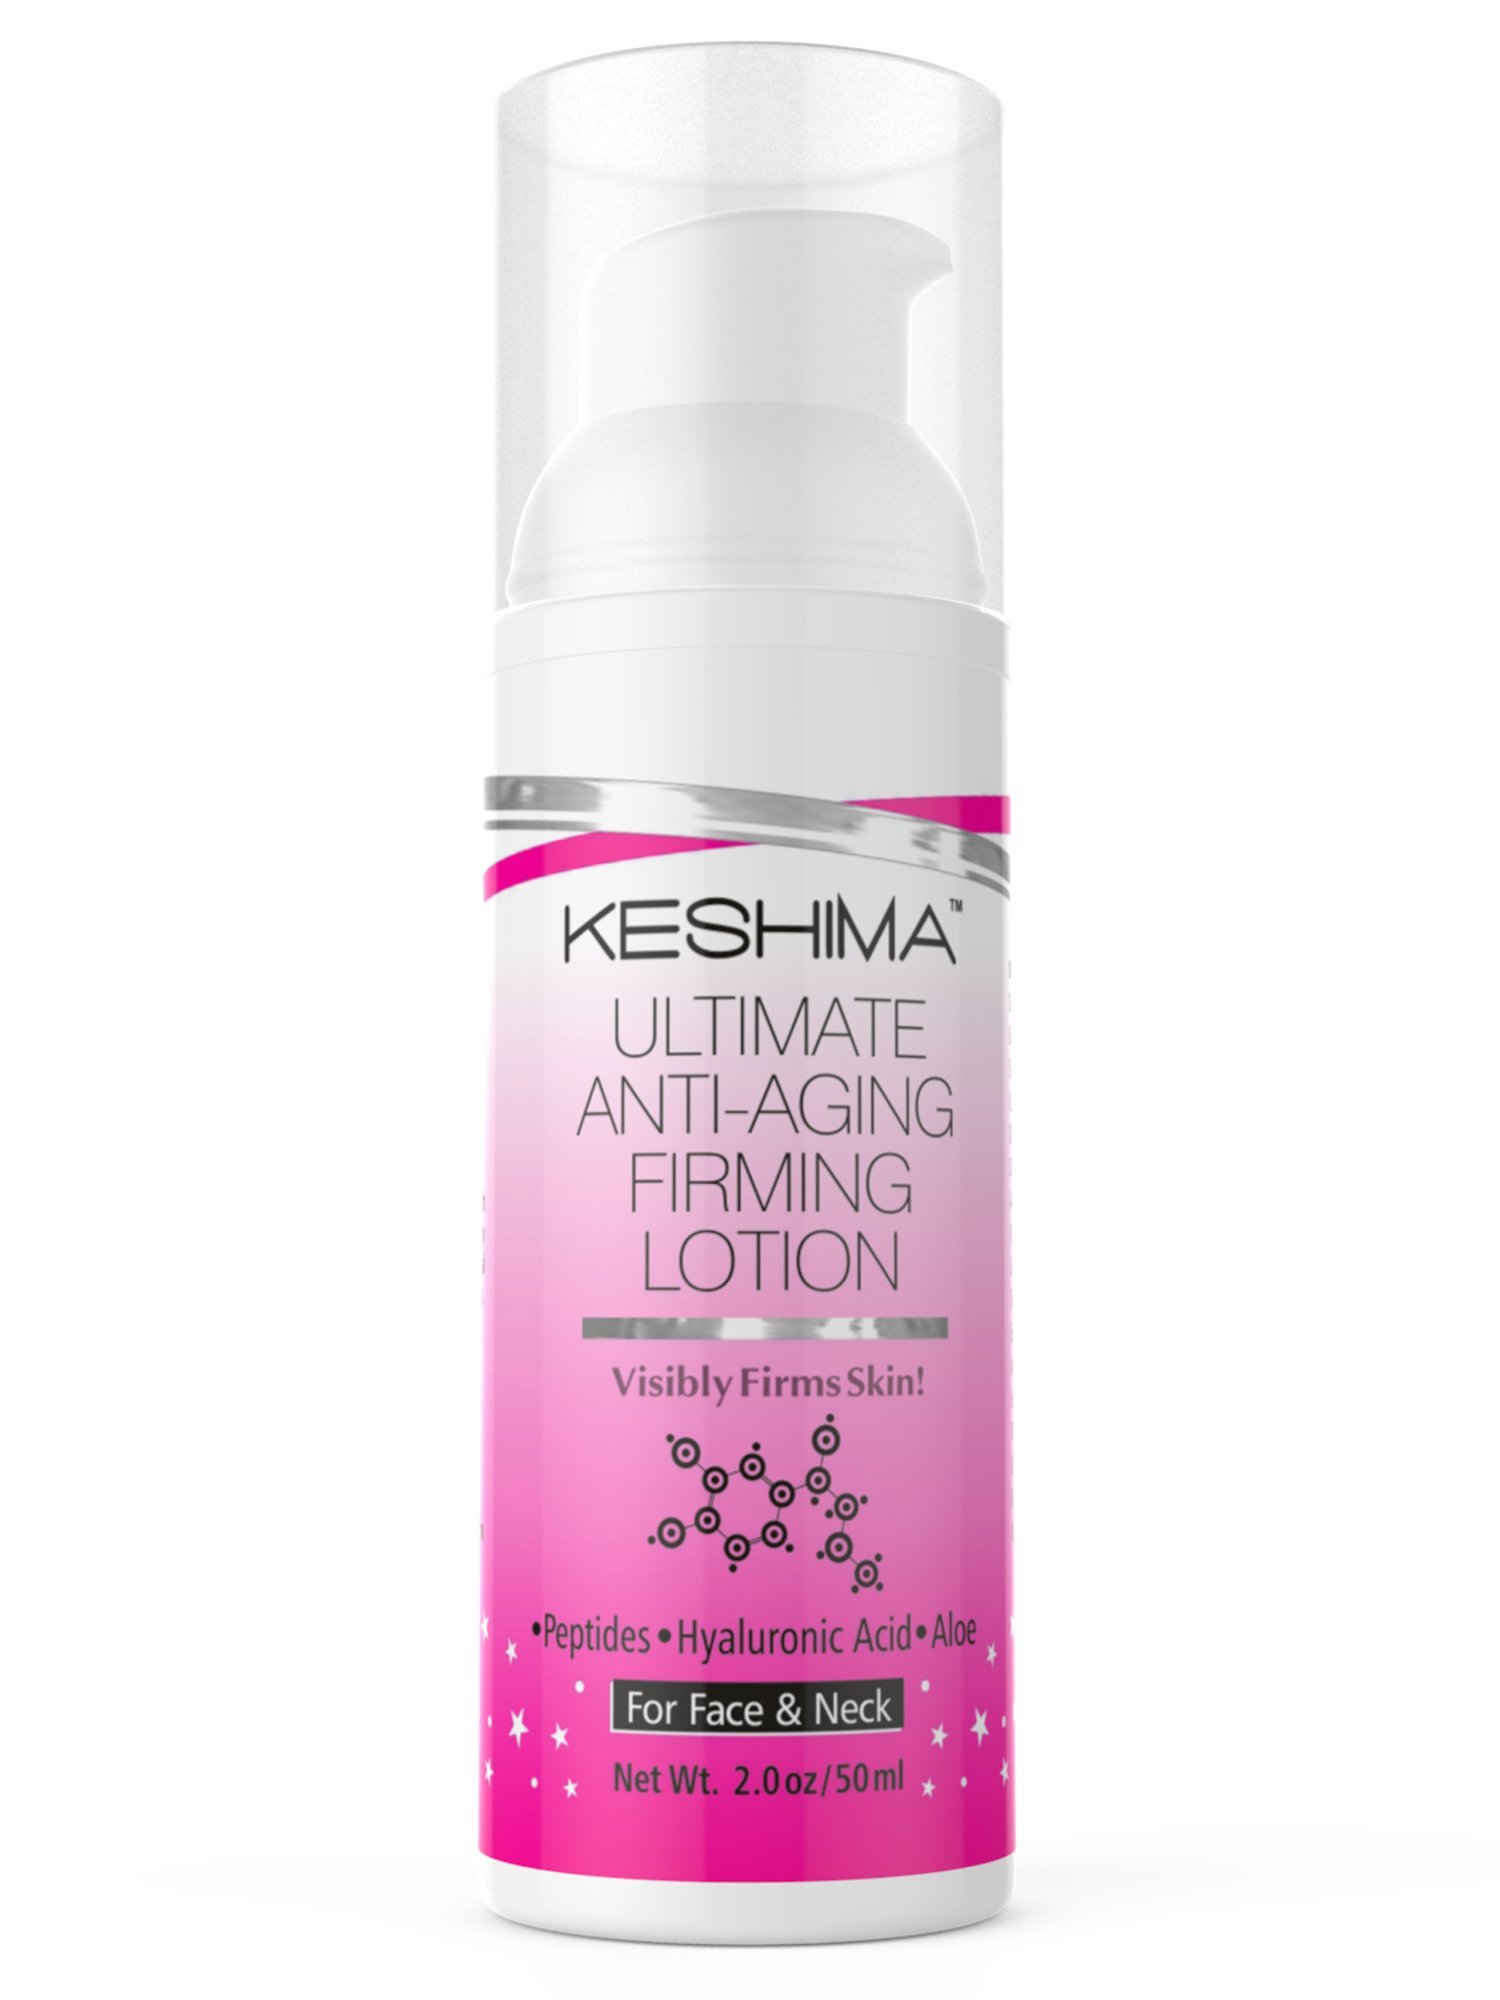 Face & Neck Firming Cream - Lotion Tightens Loose and Sagging Skin - Smooths Wrinkles and Fine Lines - 2 Oz. by KESHIMA (Image #2)